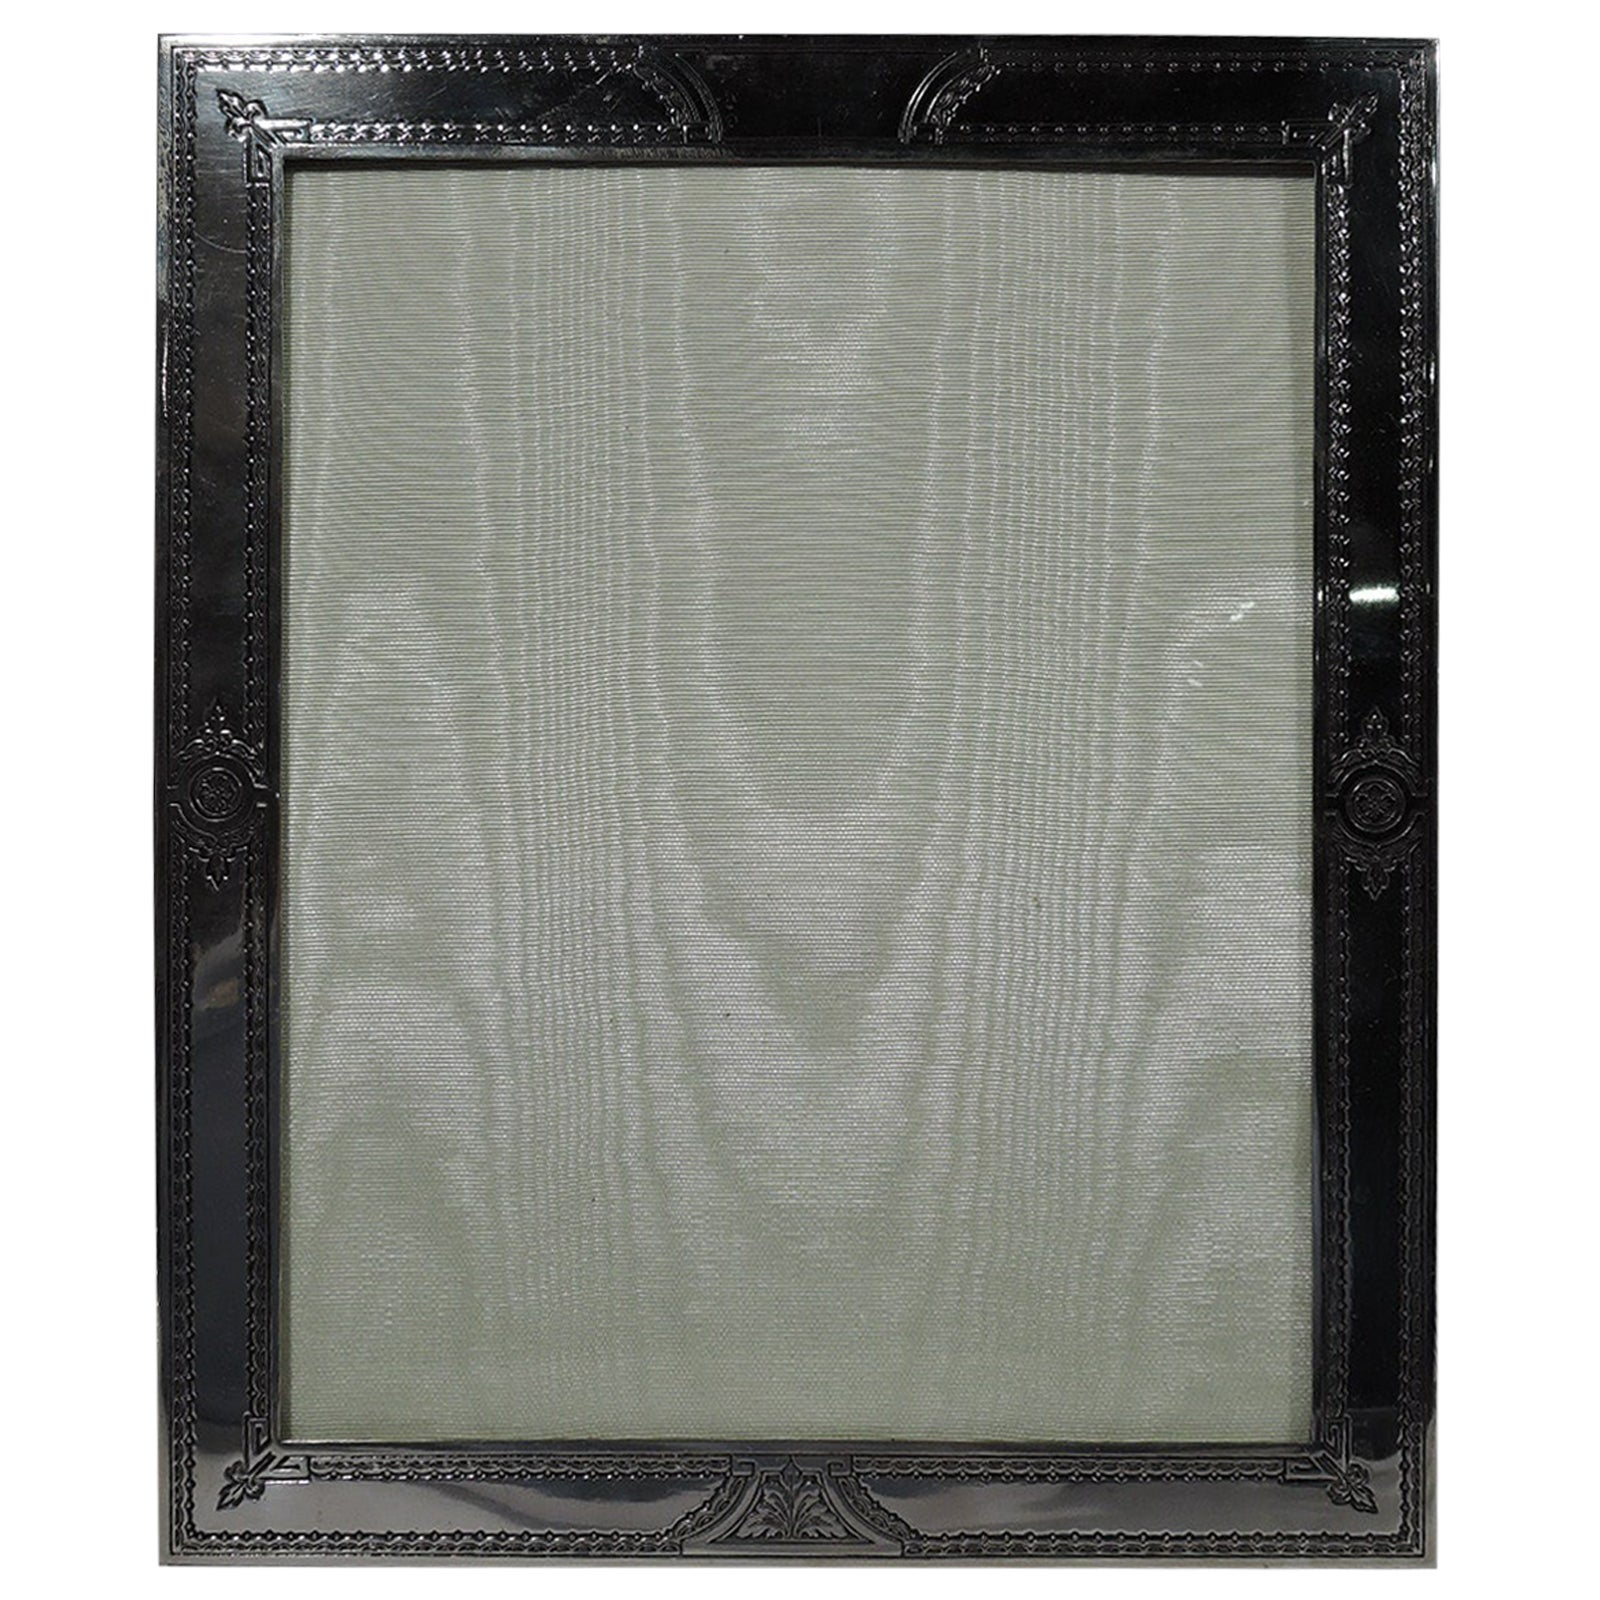 Antique American Edwardian Classical Sterling Silver Picture Frame